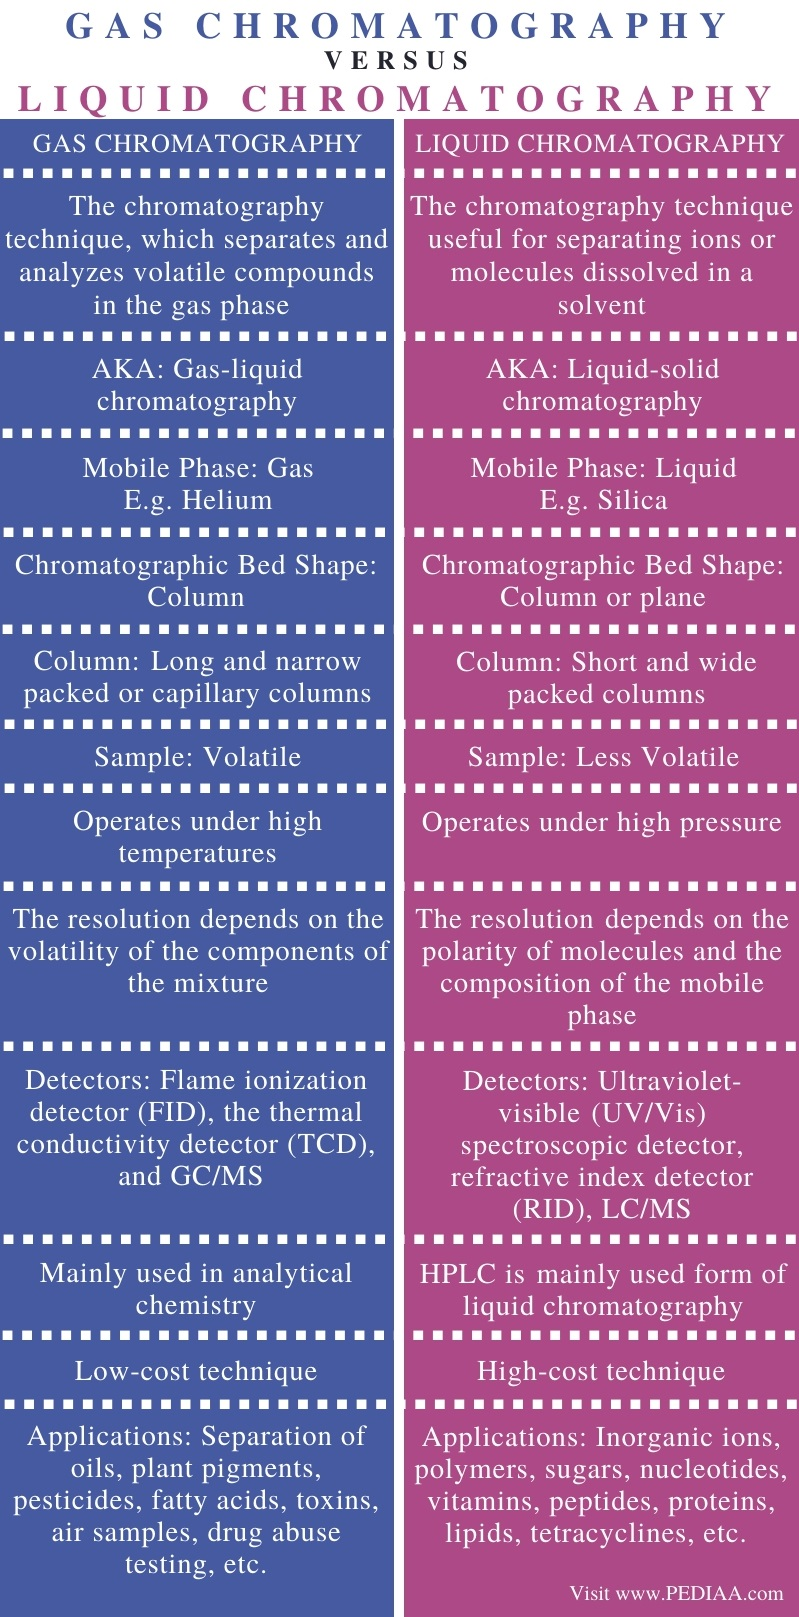 Difference Between Gas and Liquid Chromatography - Comparison Summary